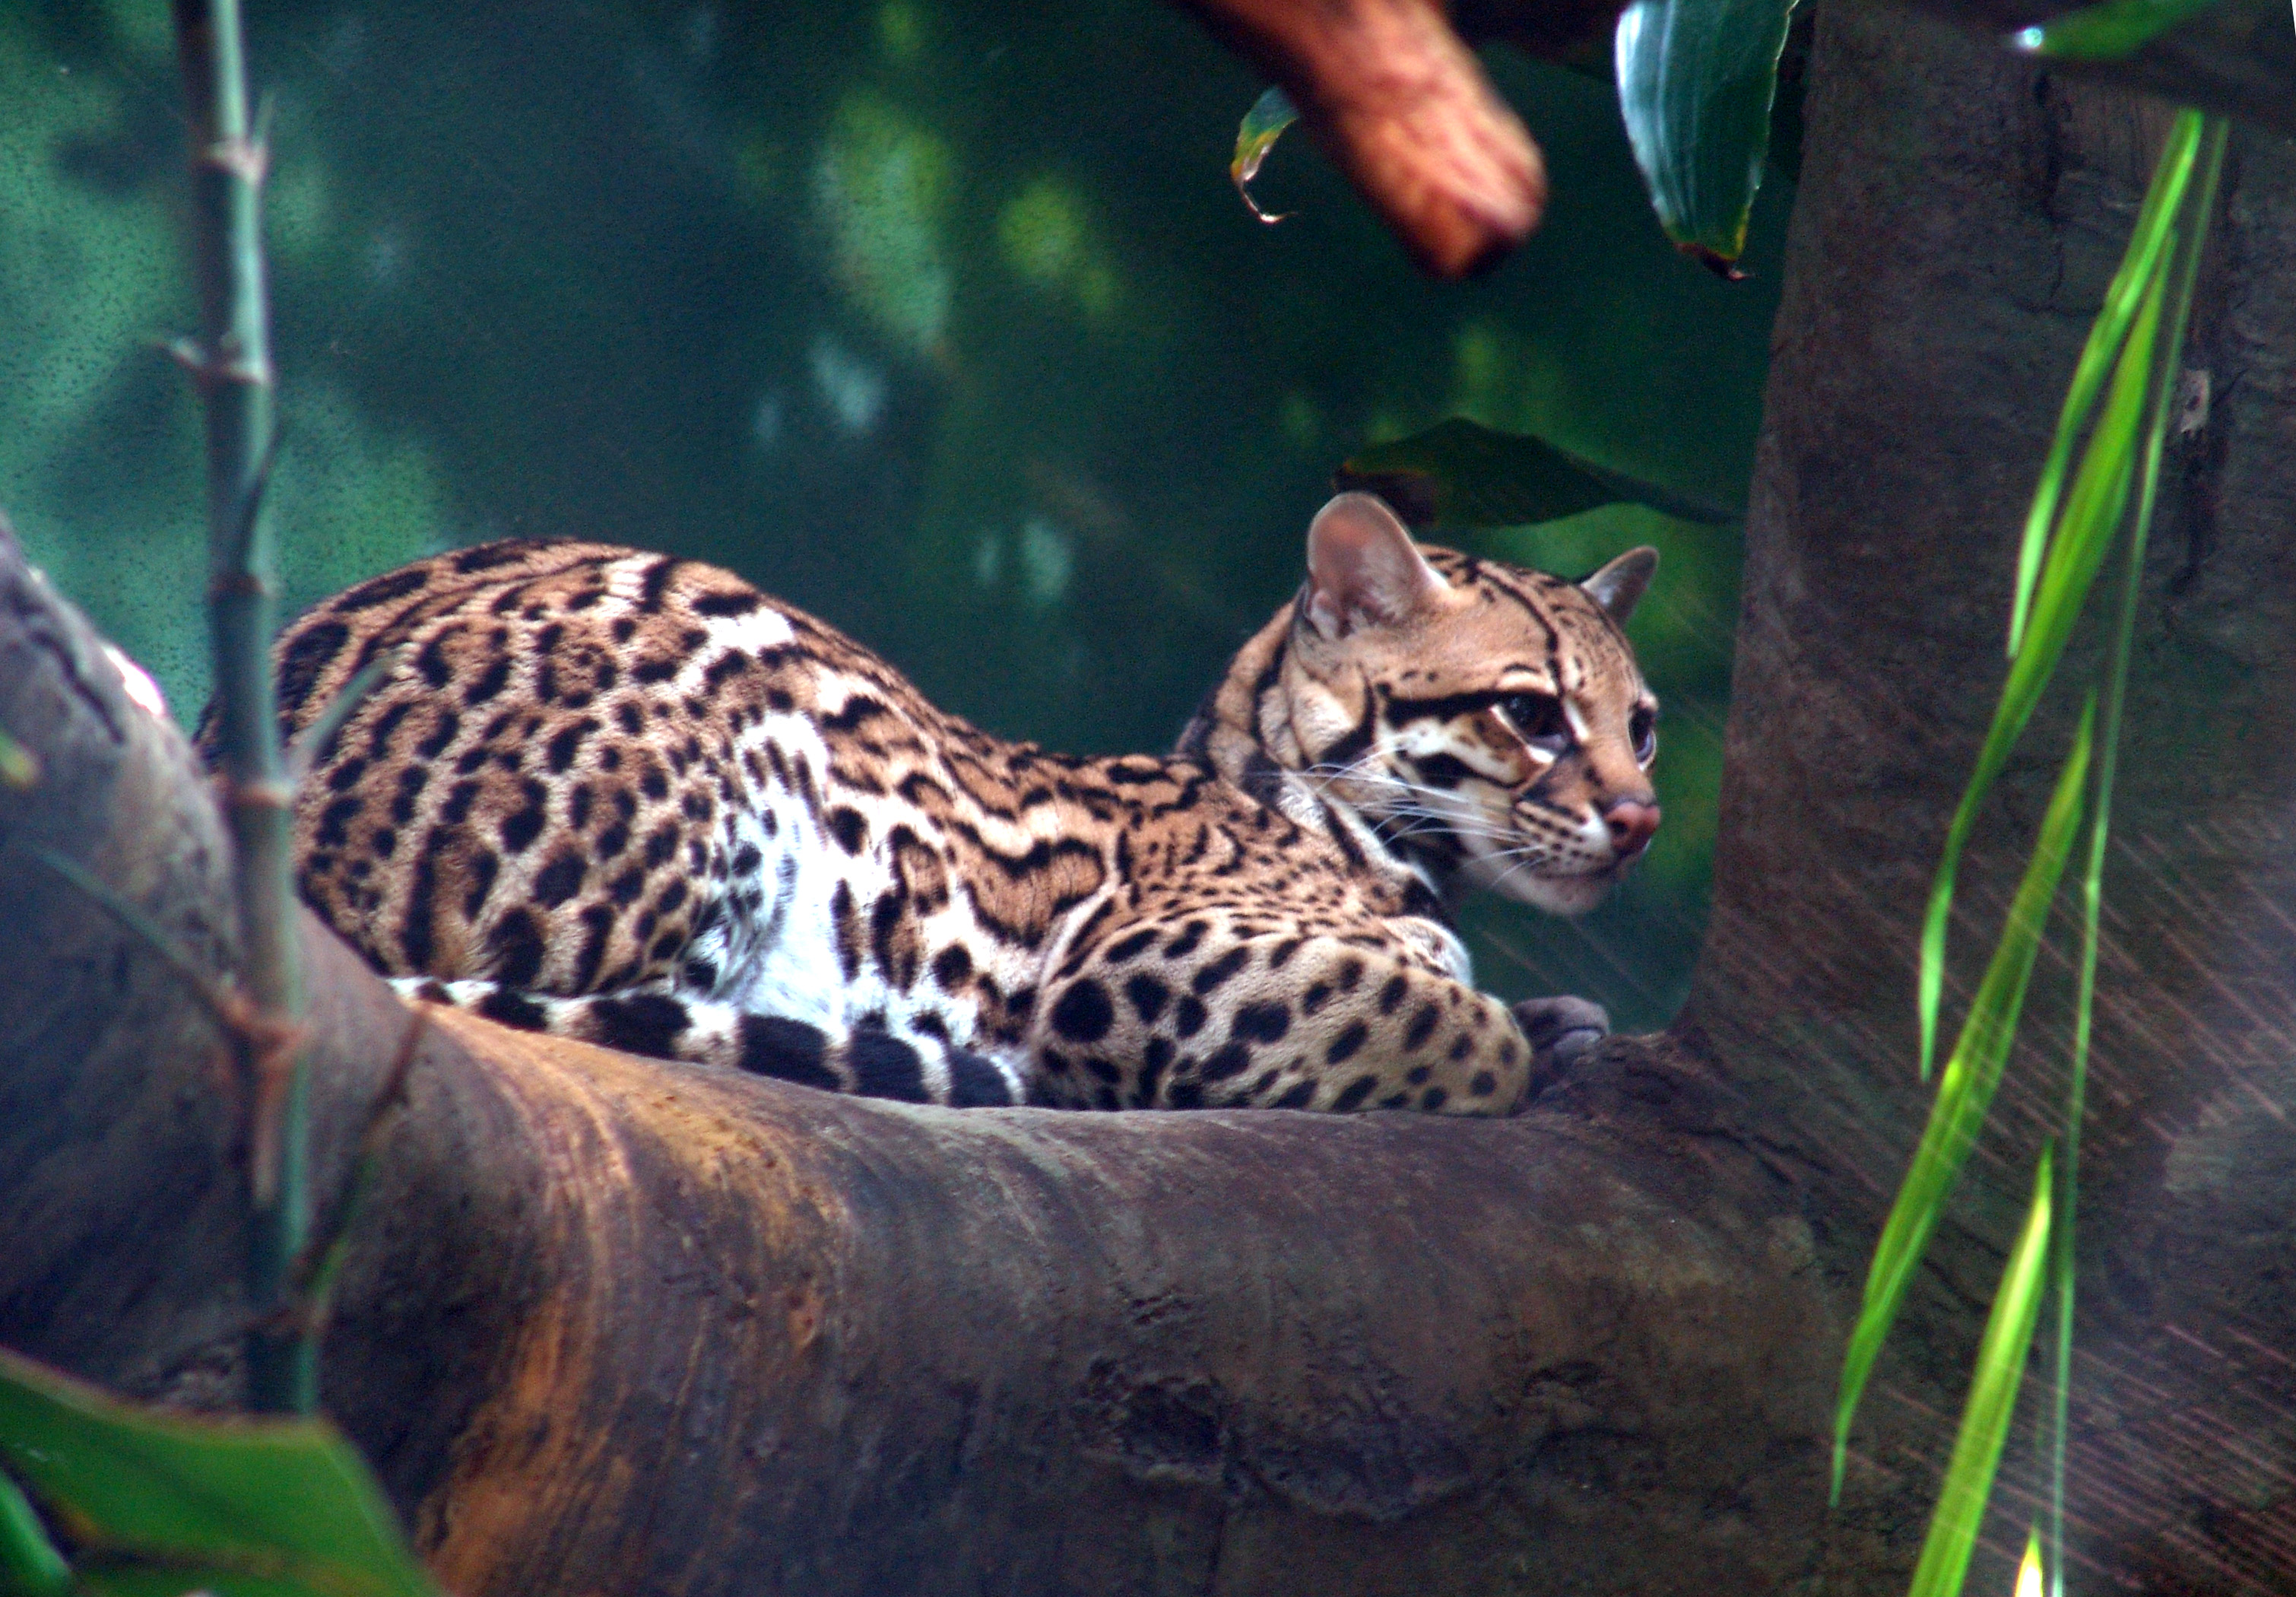 https://i1.wp.com/upload.wikimedia.org/wikipedia/commons/5/58/Ocelot_01.jpg